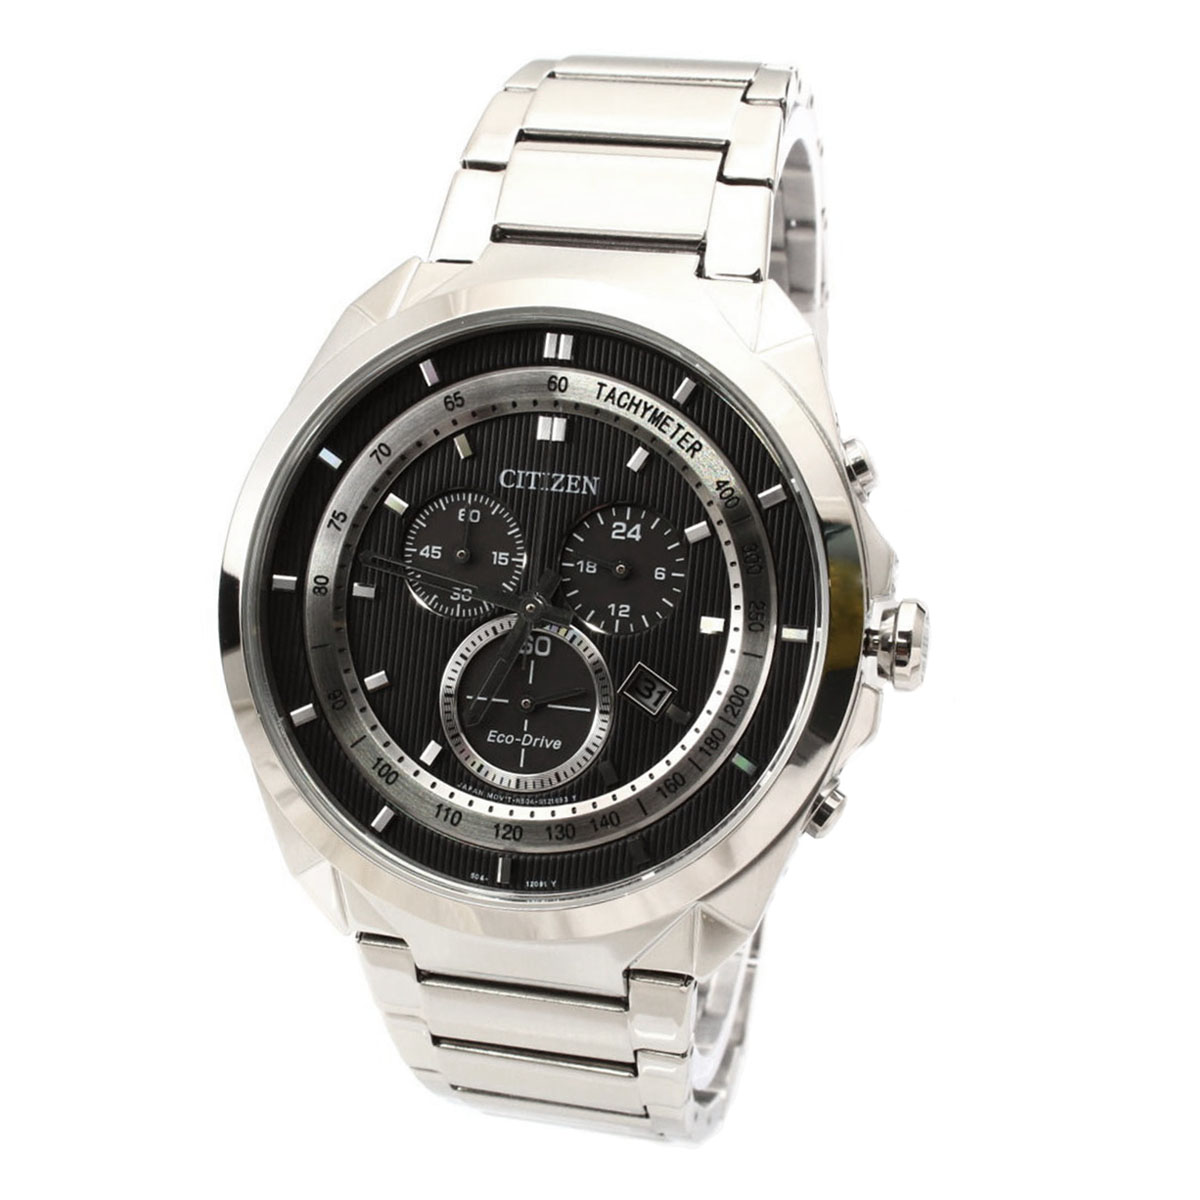 Citizen Mens AT2150-51E ECO-DRIVE Business BNIB Watch